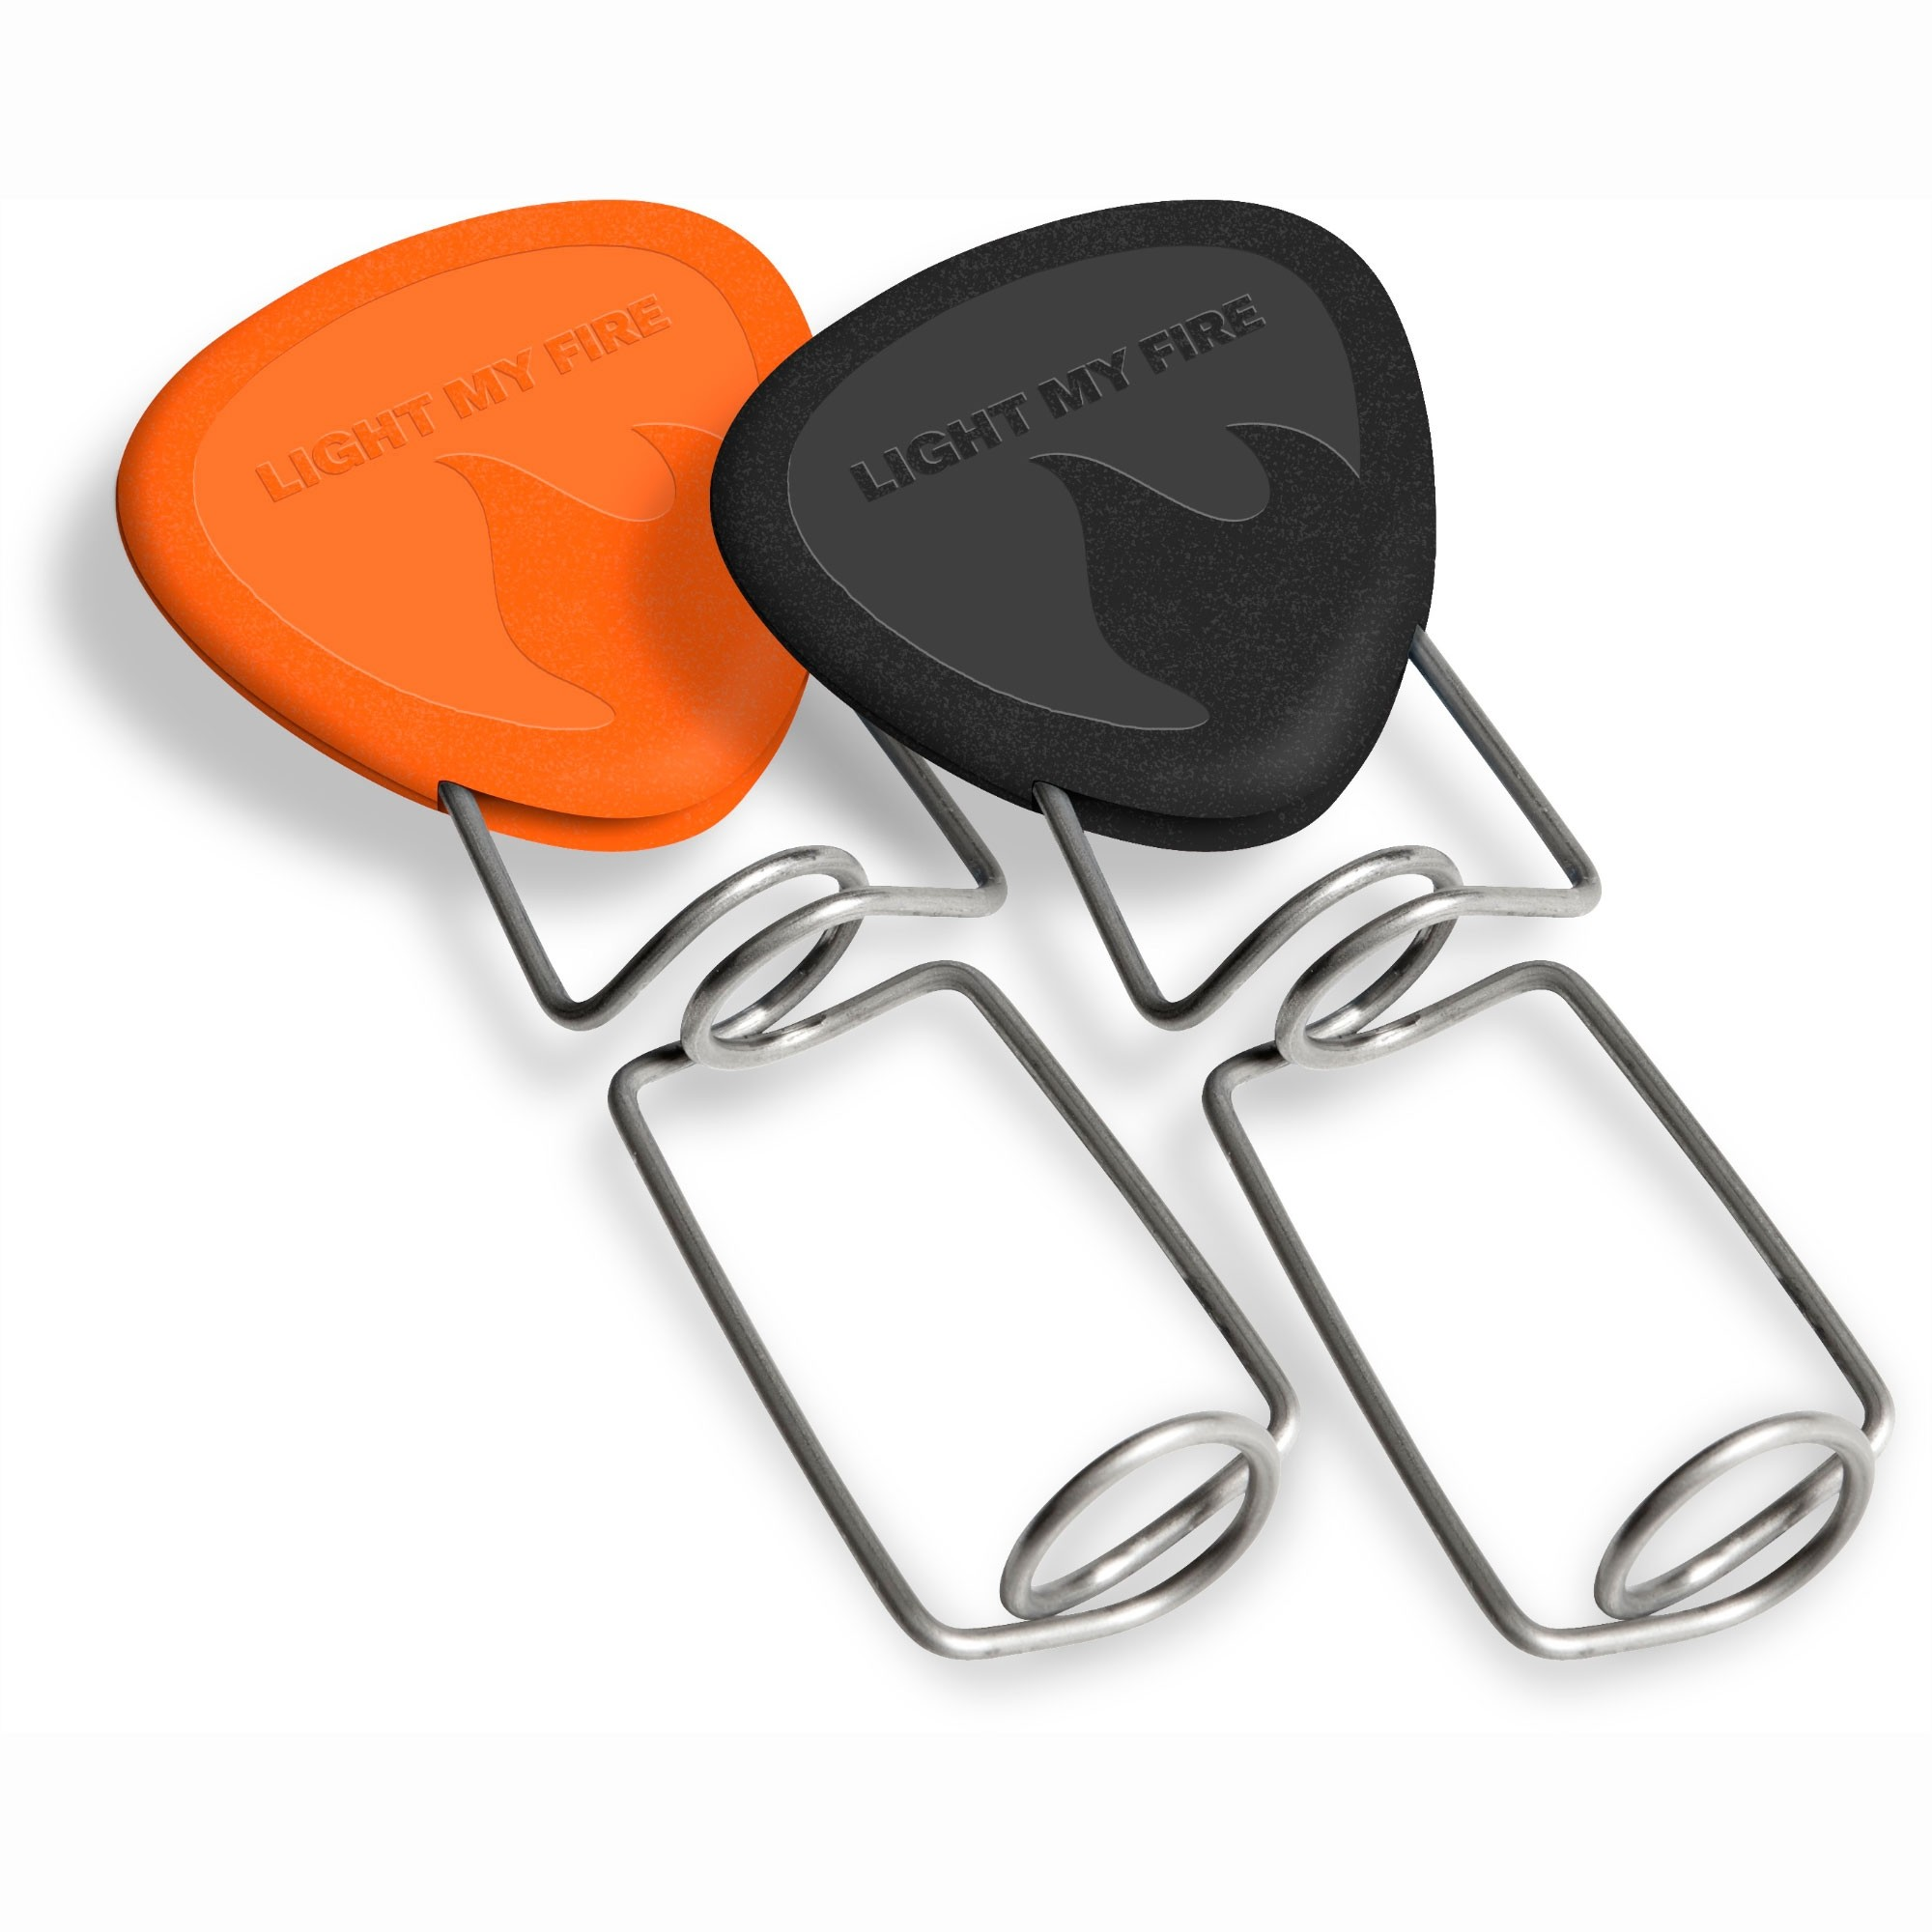 LIGHT MY FIRE - Grill Fork - Orange/Black